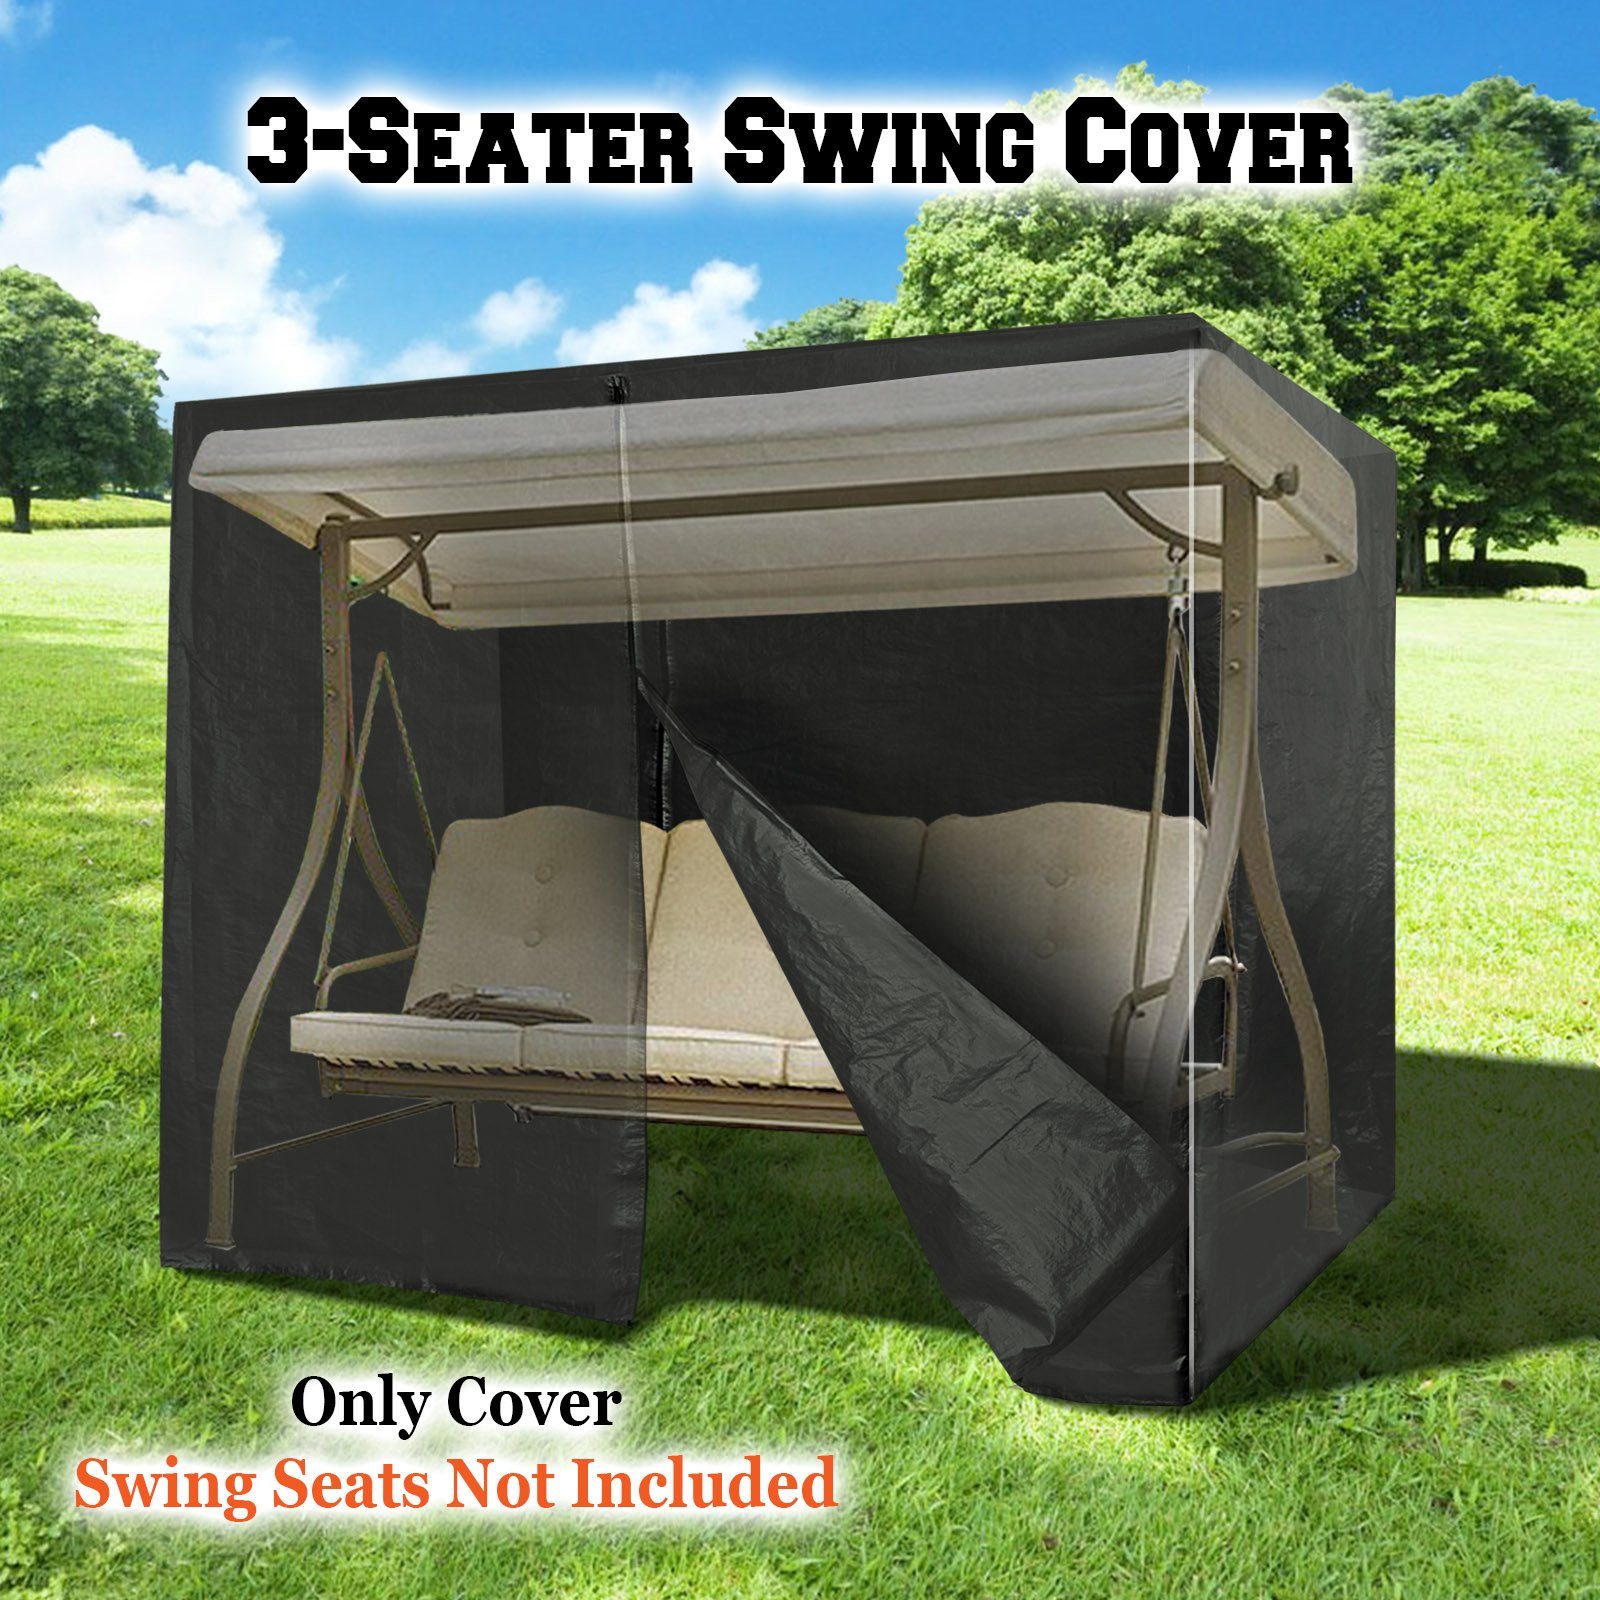 BenefitUSA 3 Triple Seater Swing Cover Outdoor Furniture Porch Protective Protector (Black) by BenefitUSA